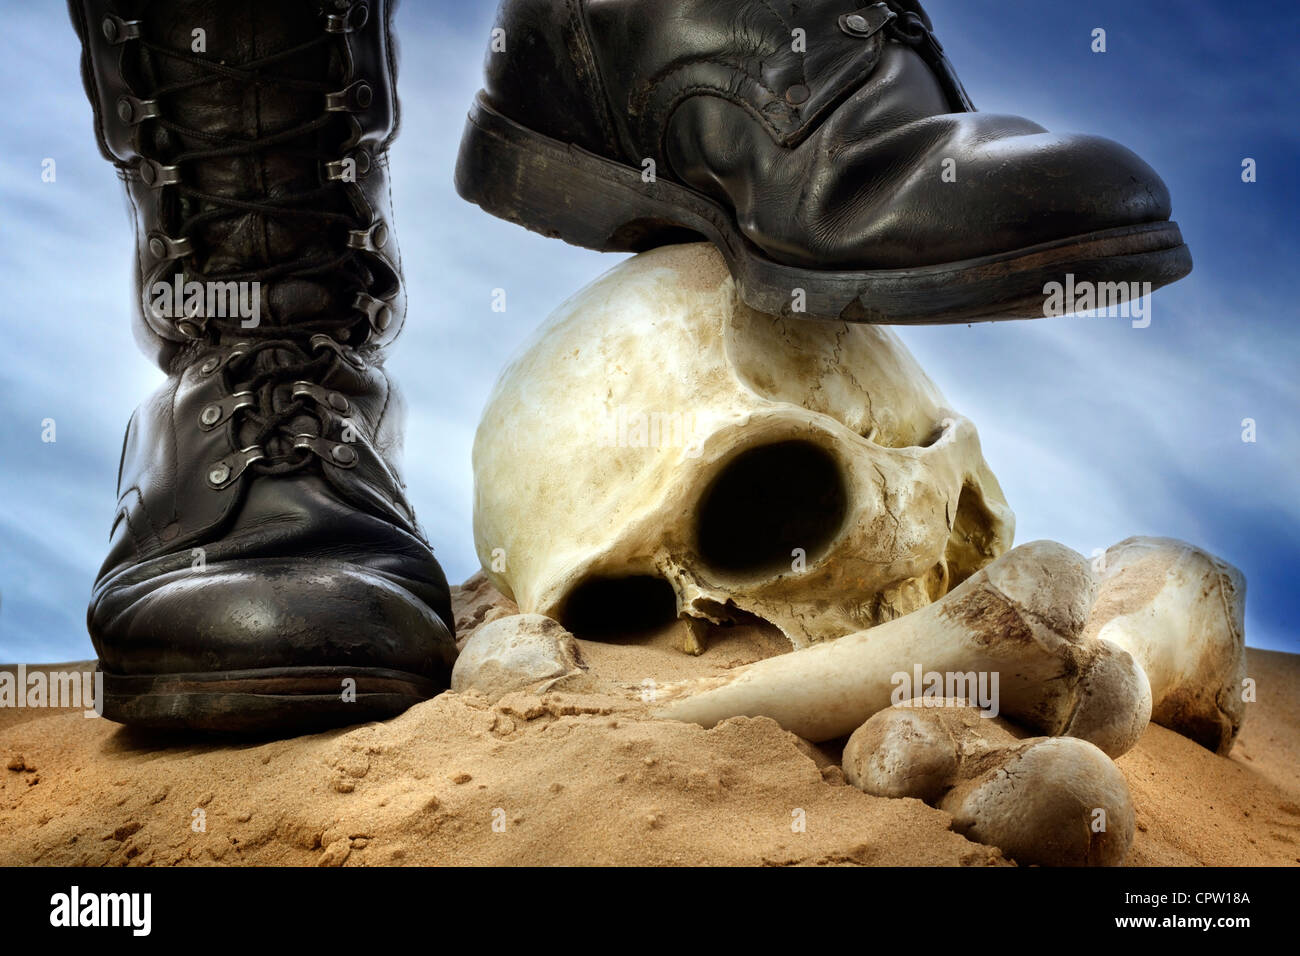 Military shoes , skull and bones cruelty of war winners and losers - Stock Image